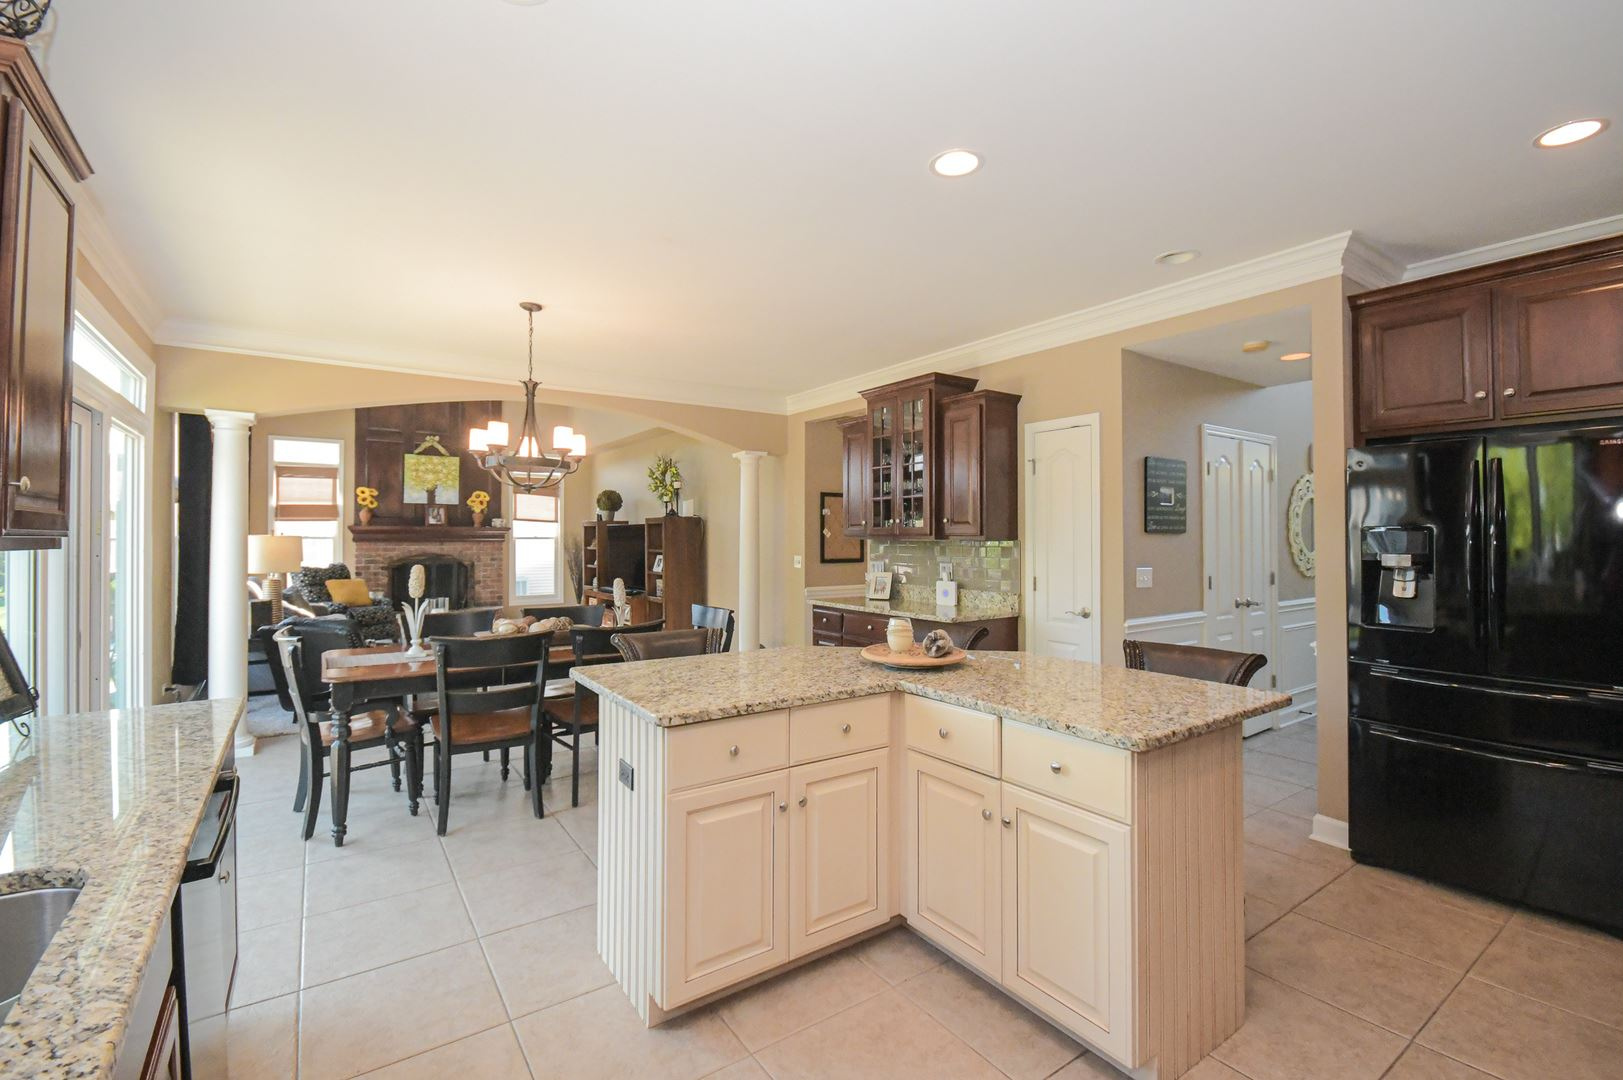 Photo of 26044 Whispering Woods Circle, Plainfield, IL 60585 (MLS # 11128985)